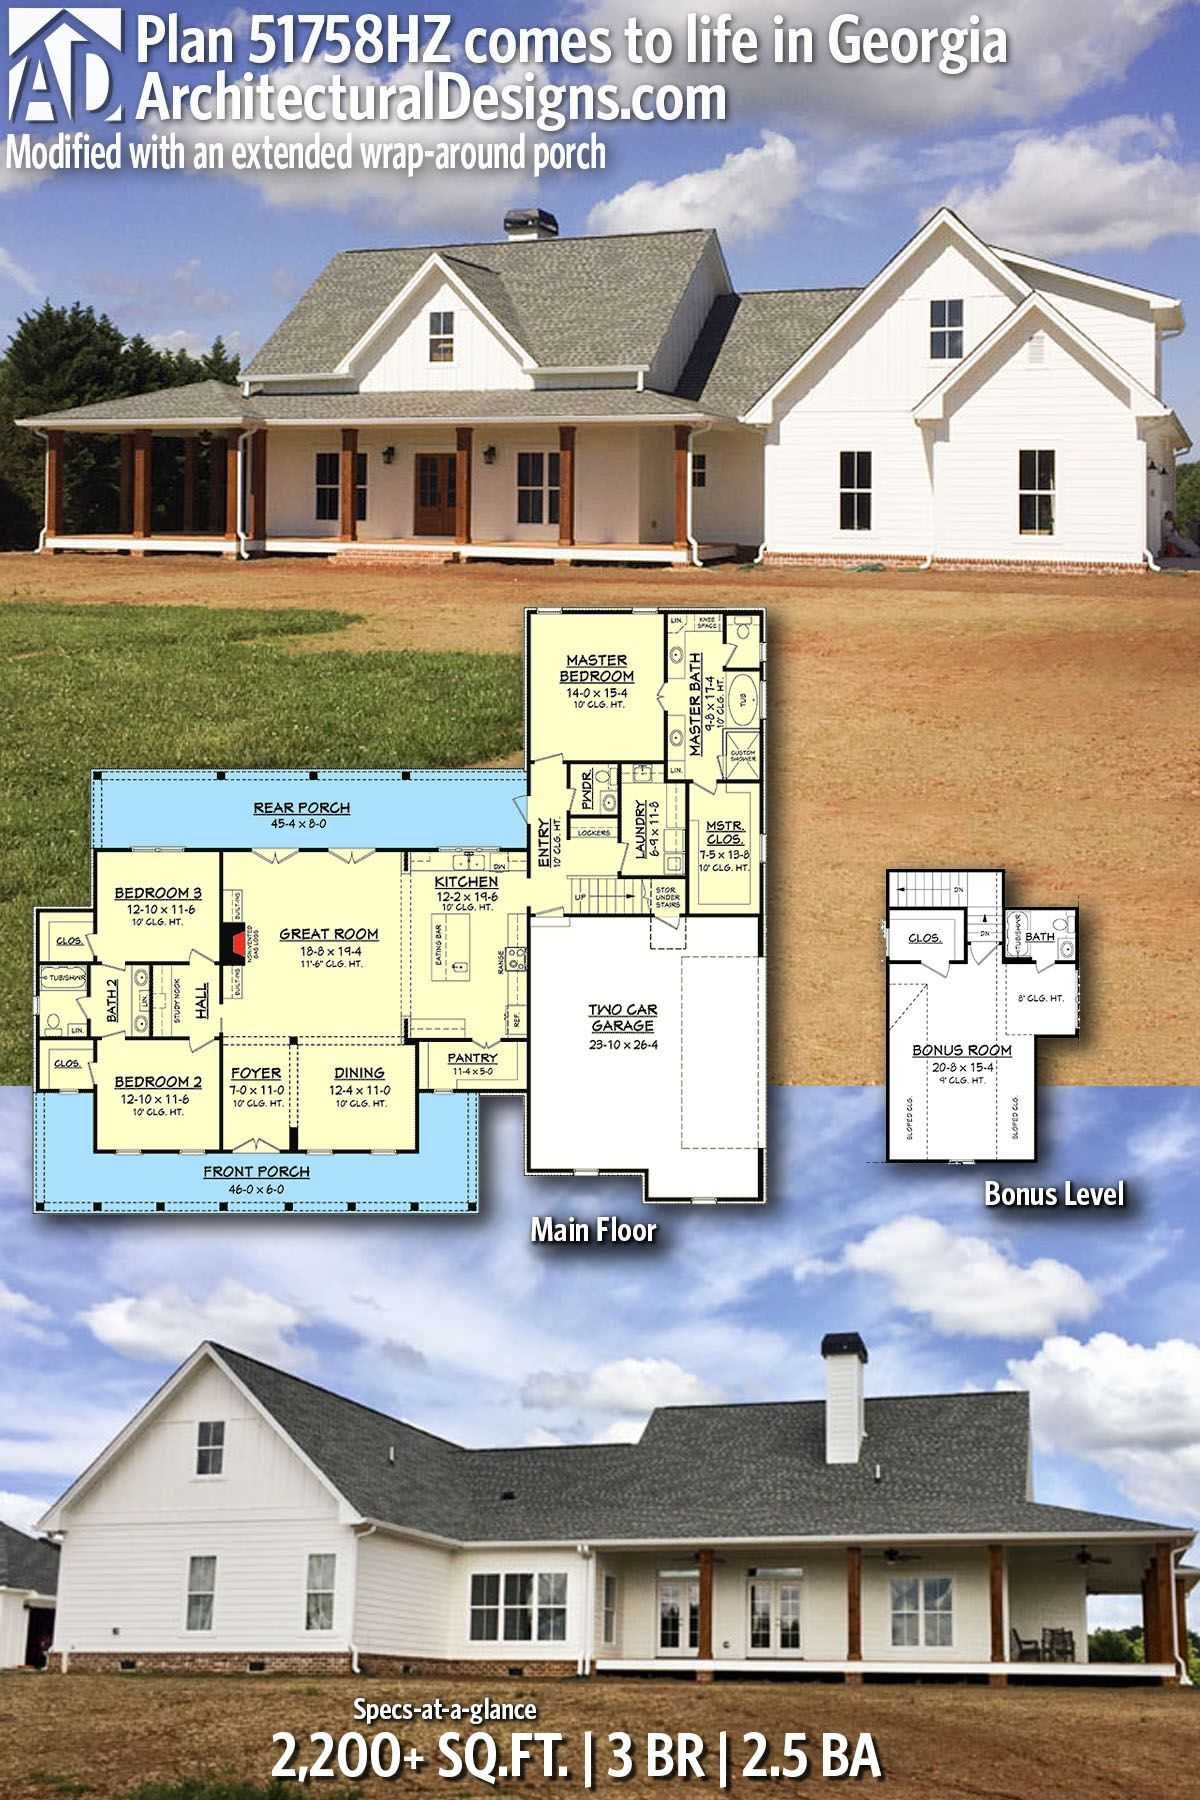 Large Farmhouse With Wrap Around Porch Awesome Large Farmhouse With Wrap Around Porch An Exterior S New House Plans Farmhouse Floor Plans Ranch House Plans